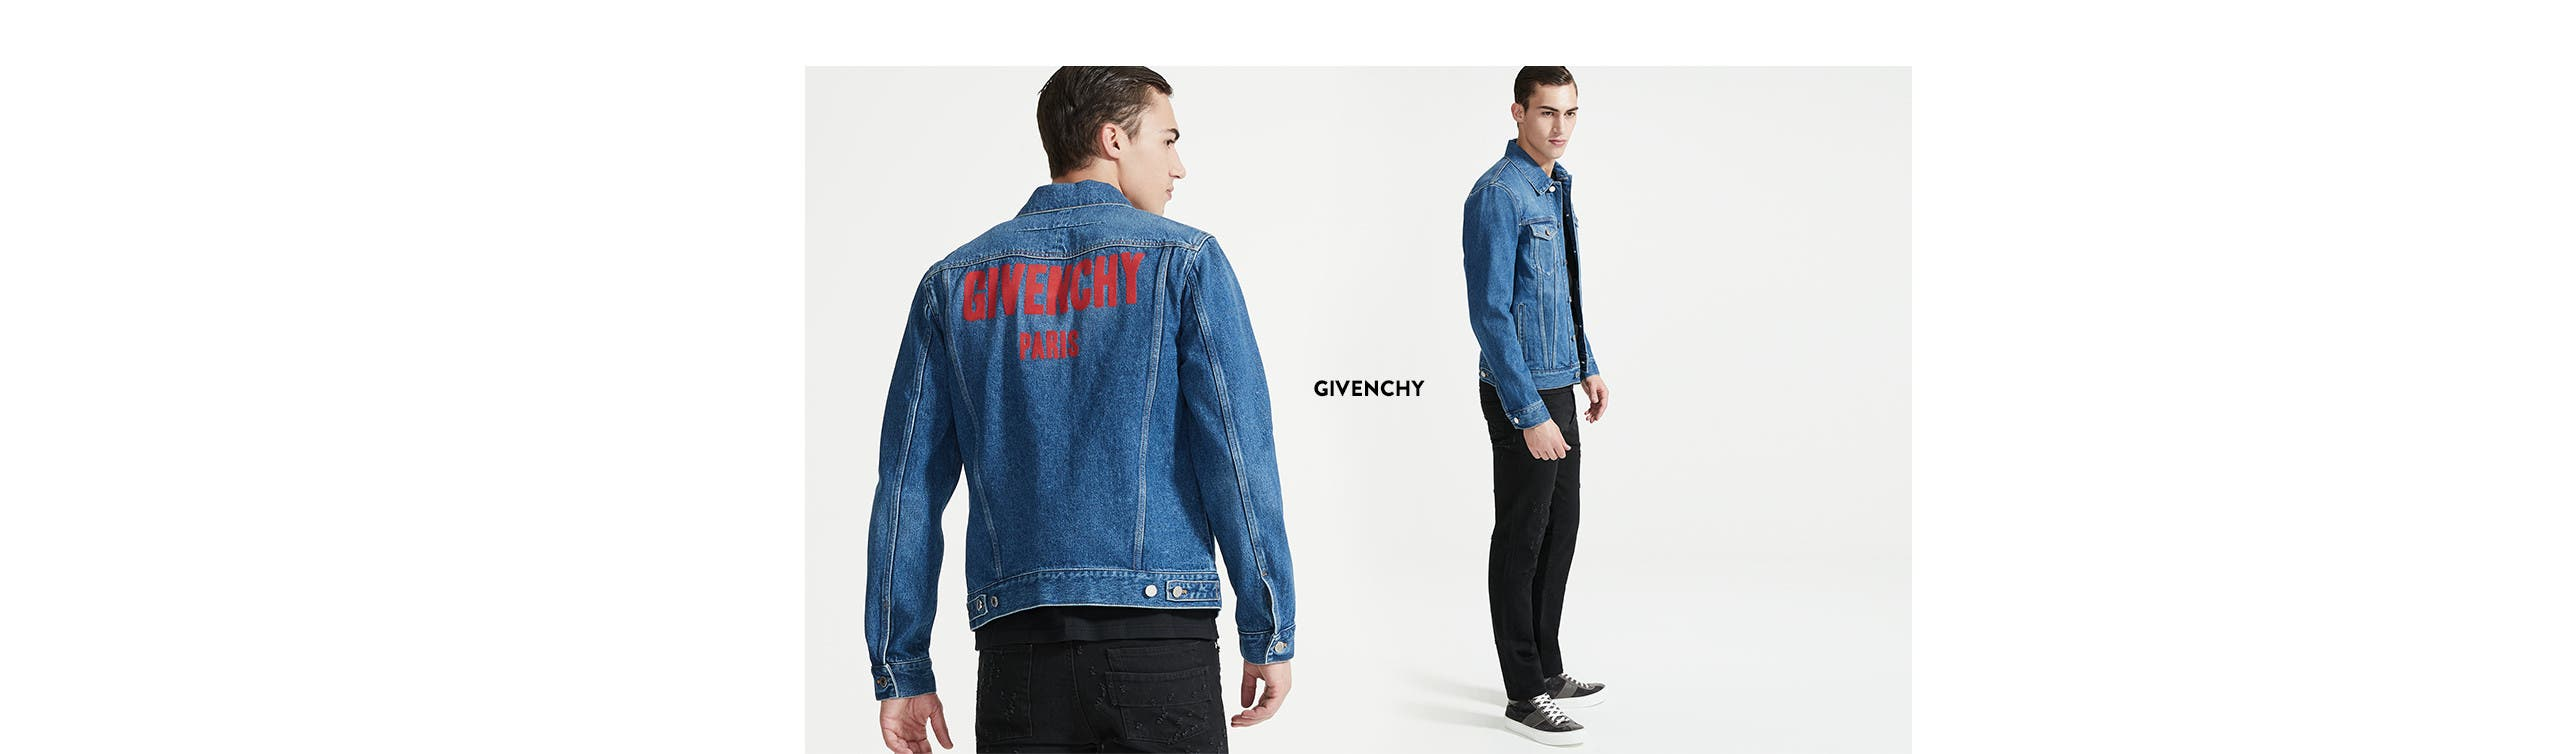 Givenchy for men.